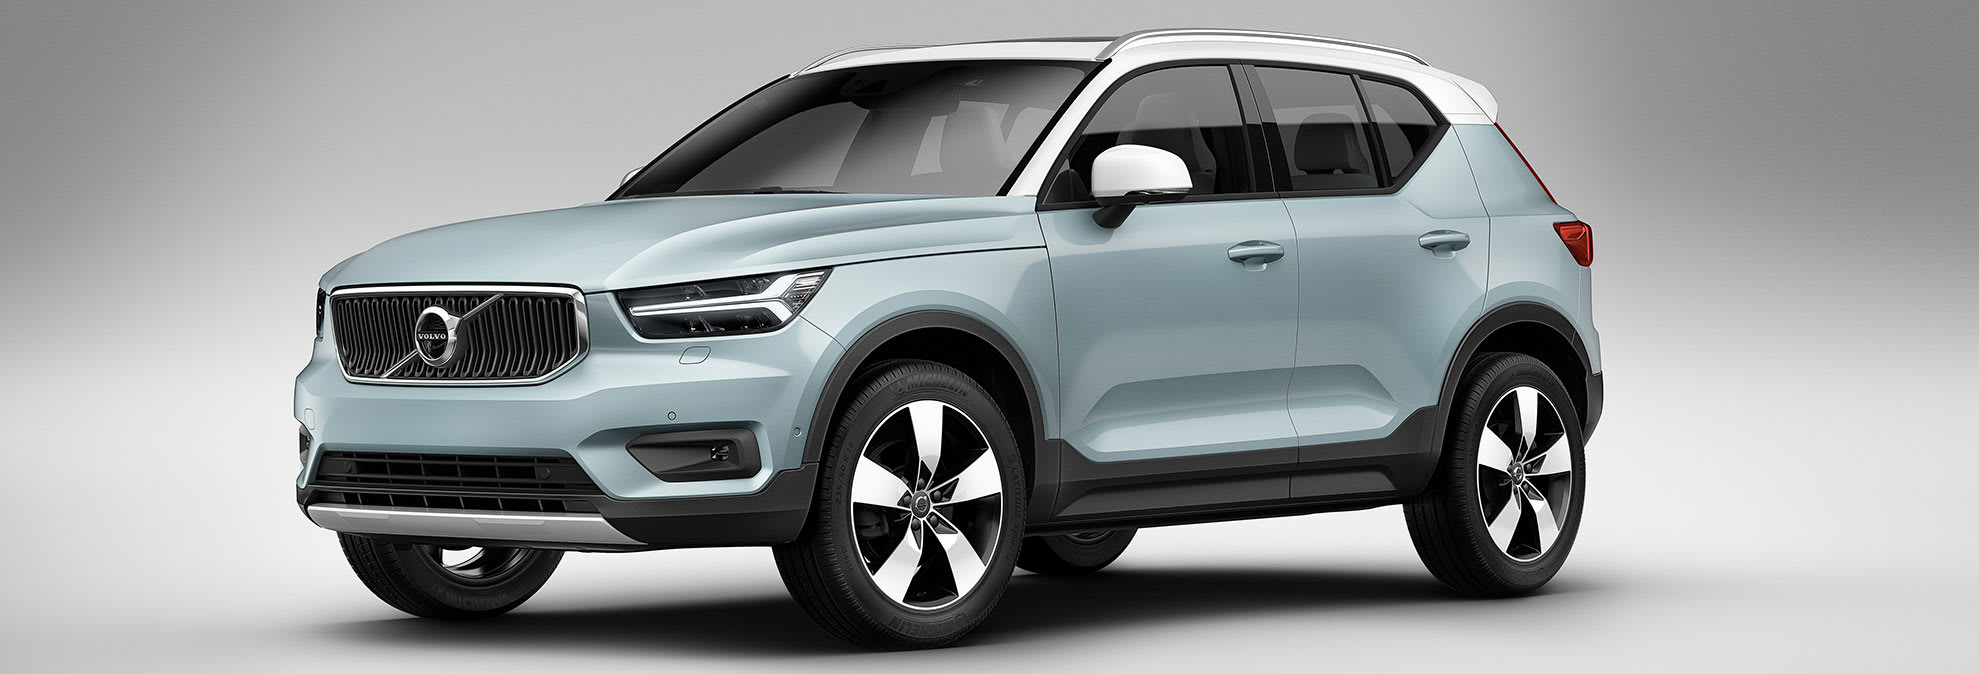 2019 volvo xc40 suv goes small and upscale consumer reports. Black Bedroom Furniture Sets. Home Design Ideas